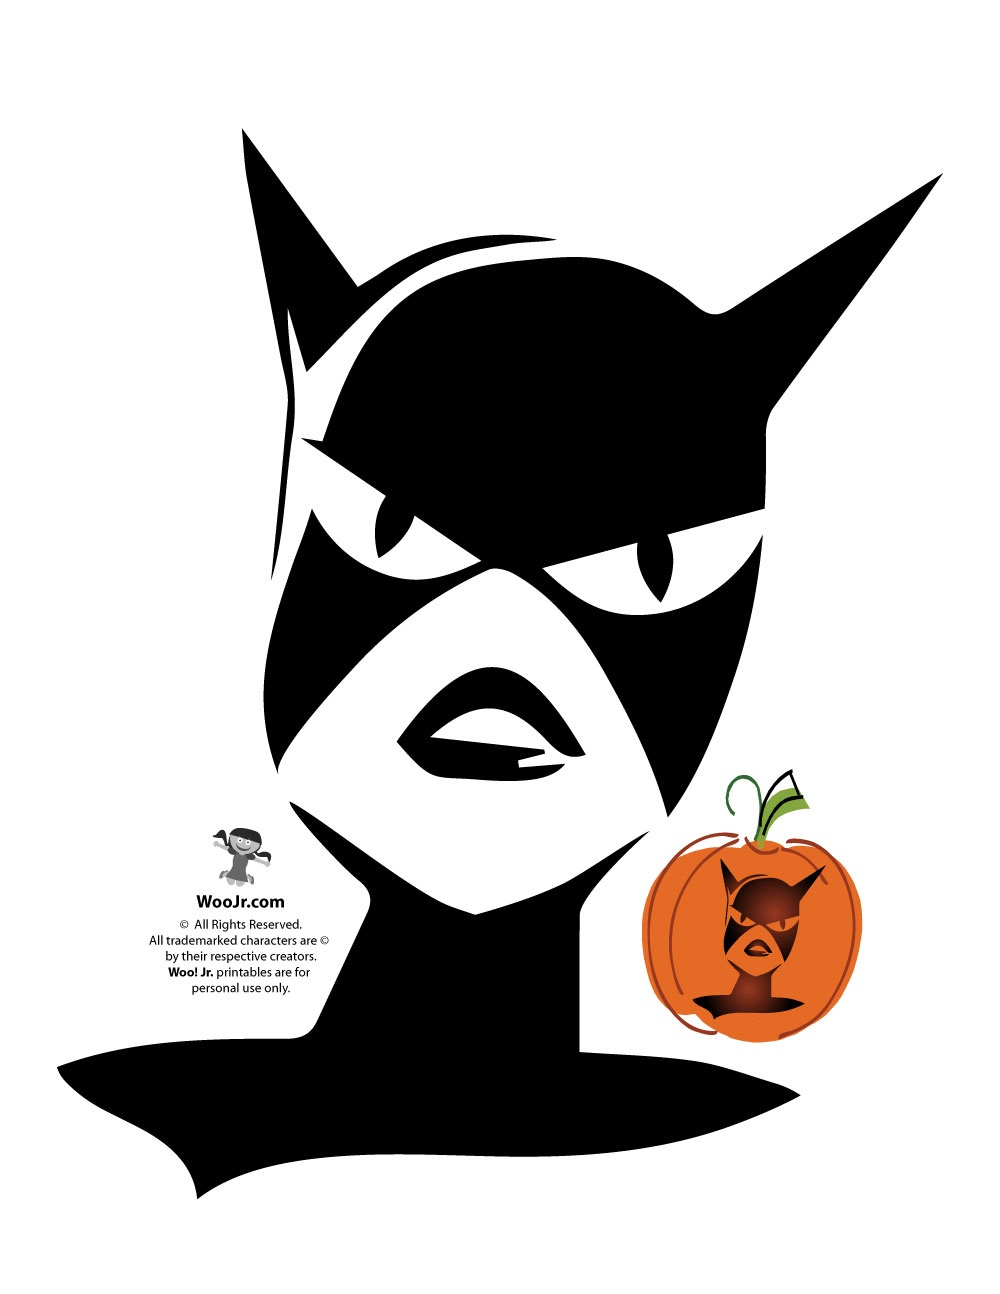 Superman, Batman, Wonder Woman & Dc Comics Villains Pumpkin Stencils - Superhero Pumpkin Stencils Free Printable